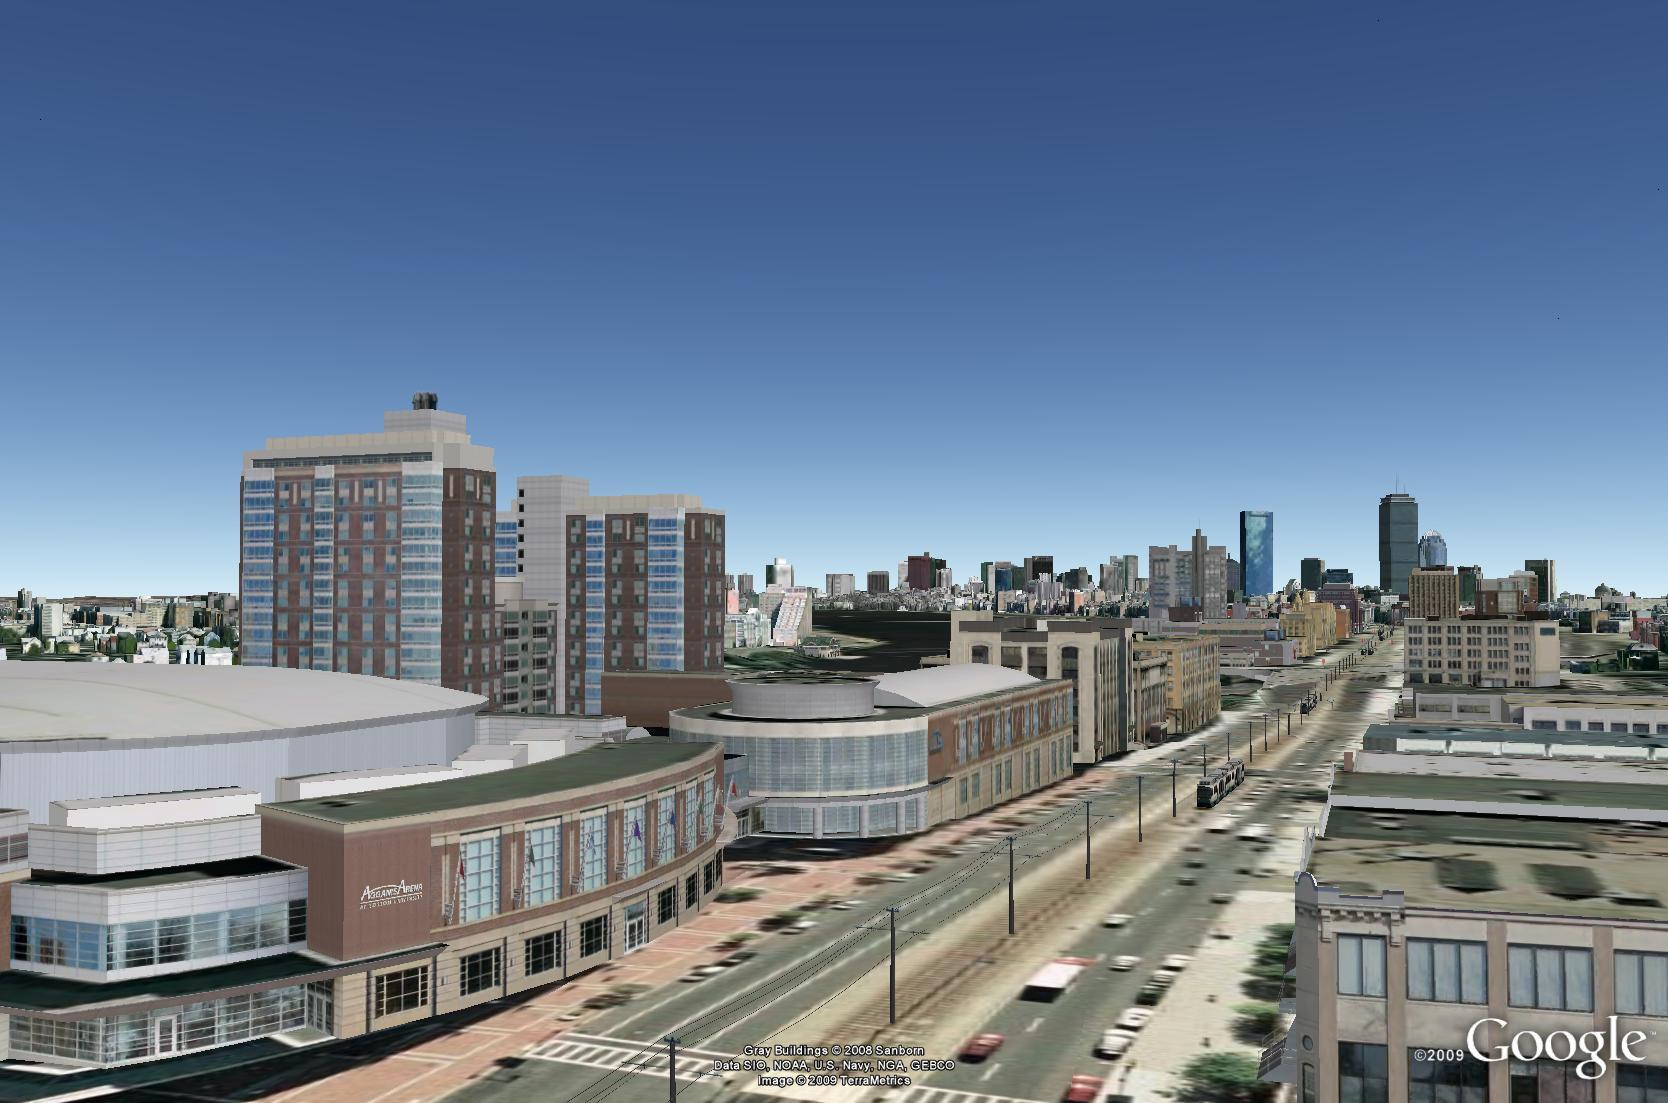 concept3D Completes 3D Modeling and Google Earth(TM) Integration of Boston University